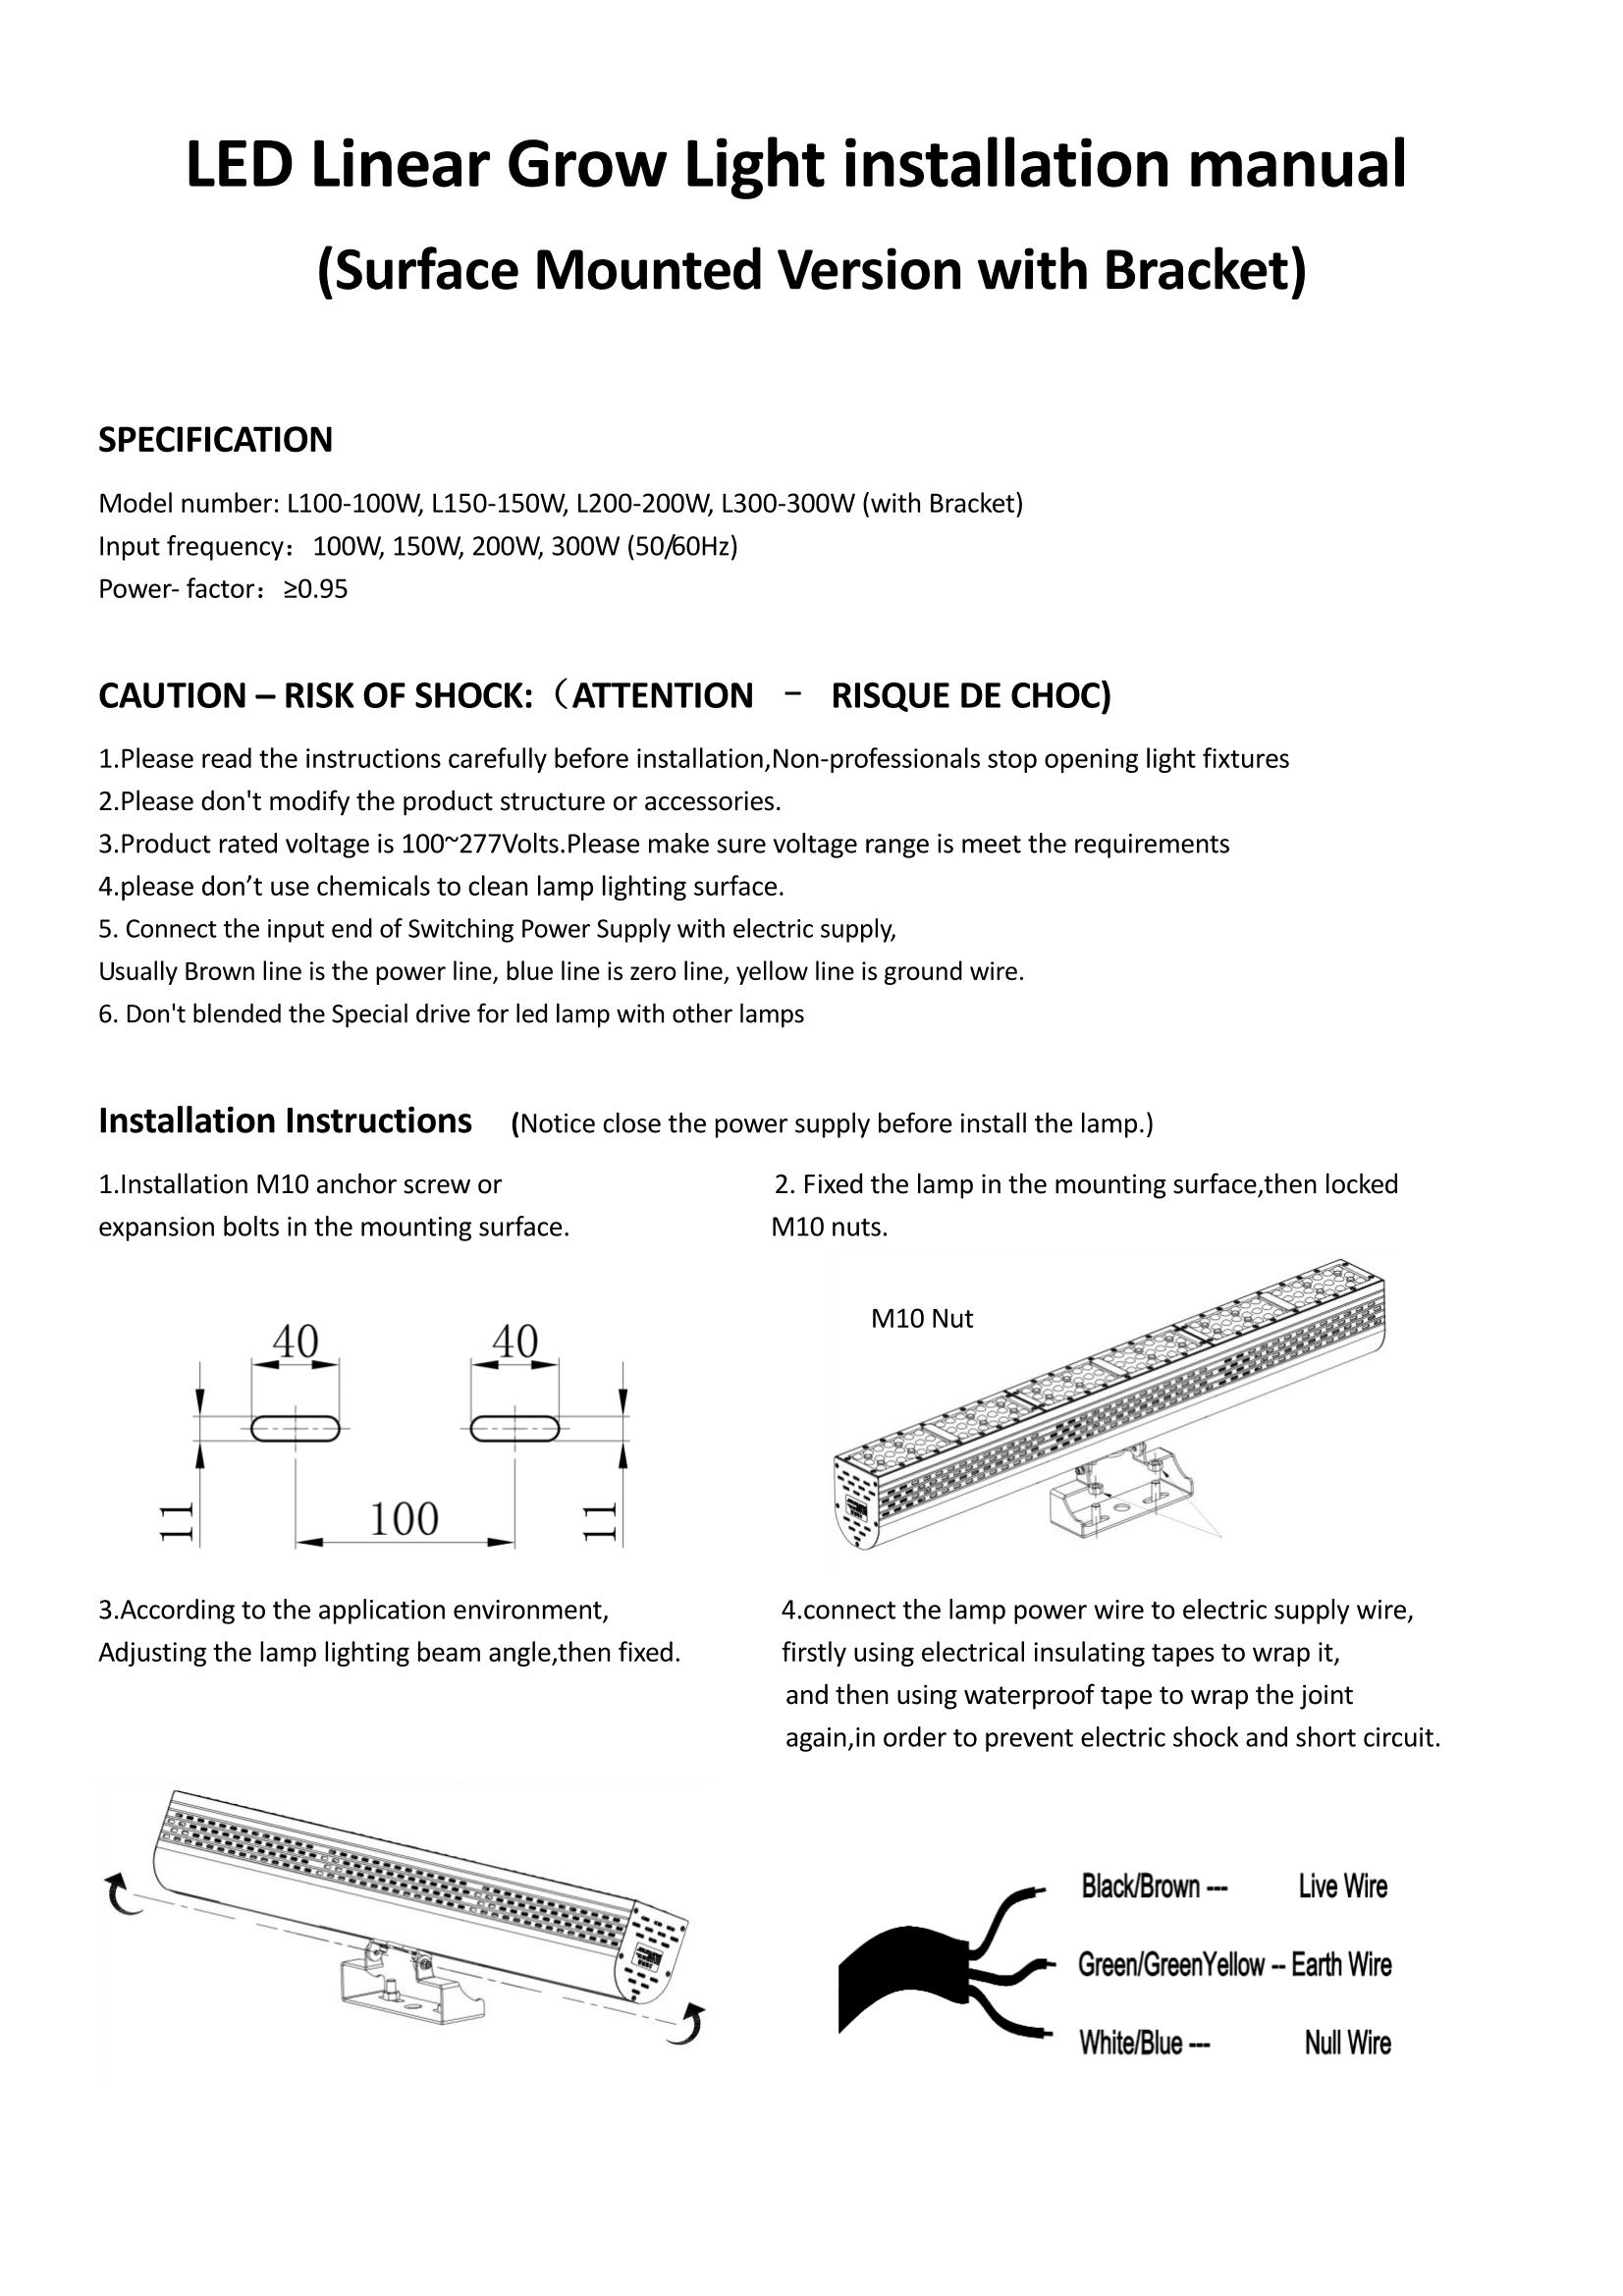 installation-instruction-for-led-linear-grow-light-surface-mounted-version-page-1.jpeg